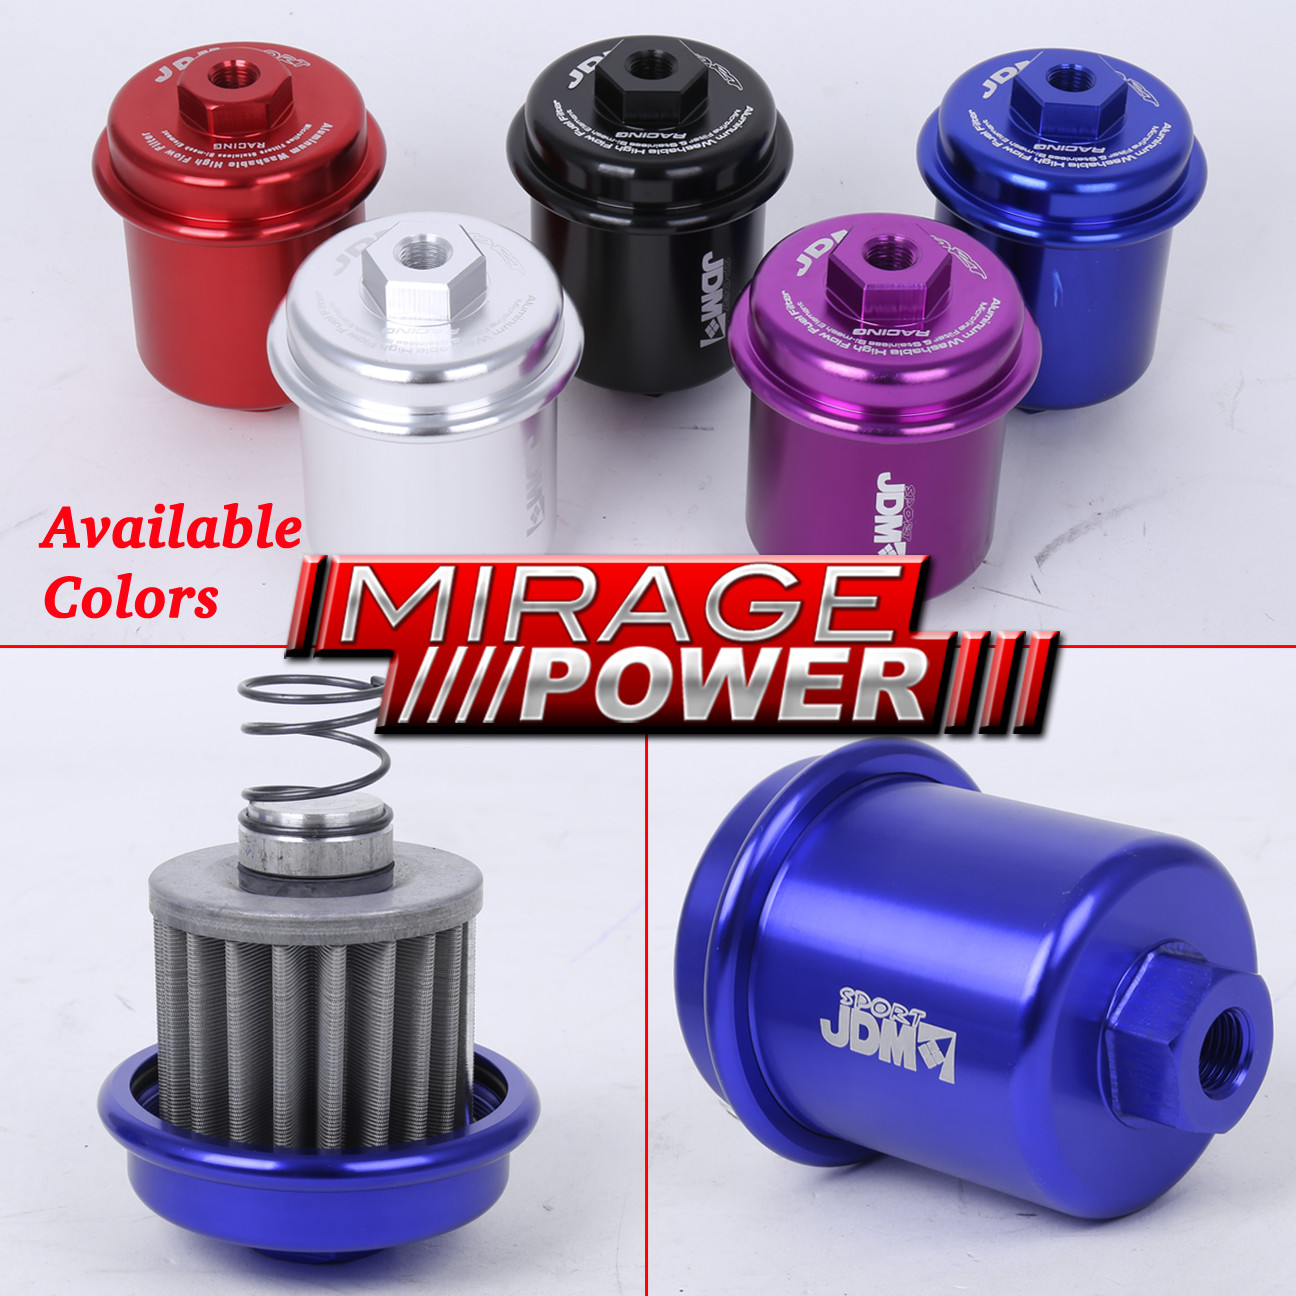 Jdm Sport High Flow Fuel Filter Toyota Supra Camry Corolla Fully Location Rebuildable